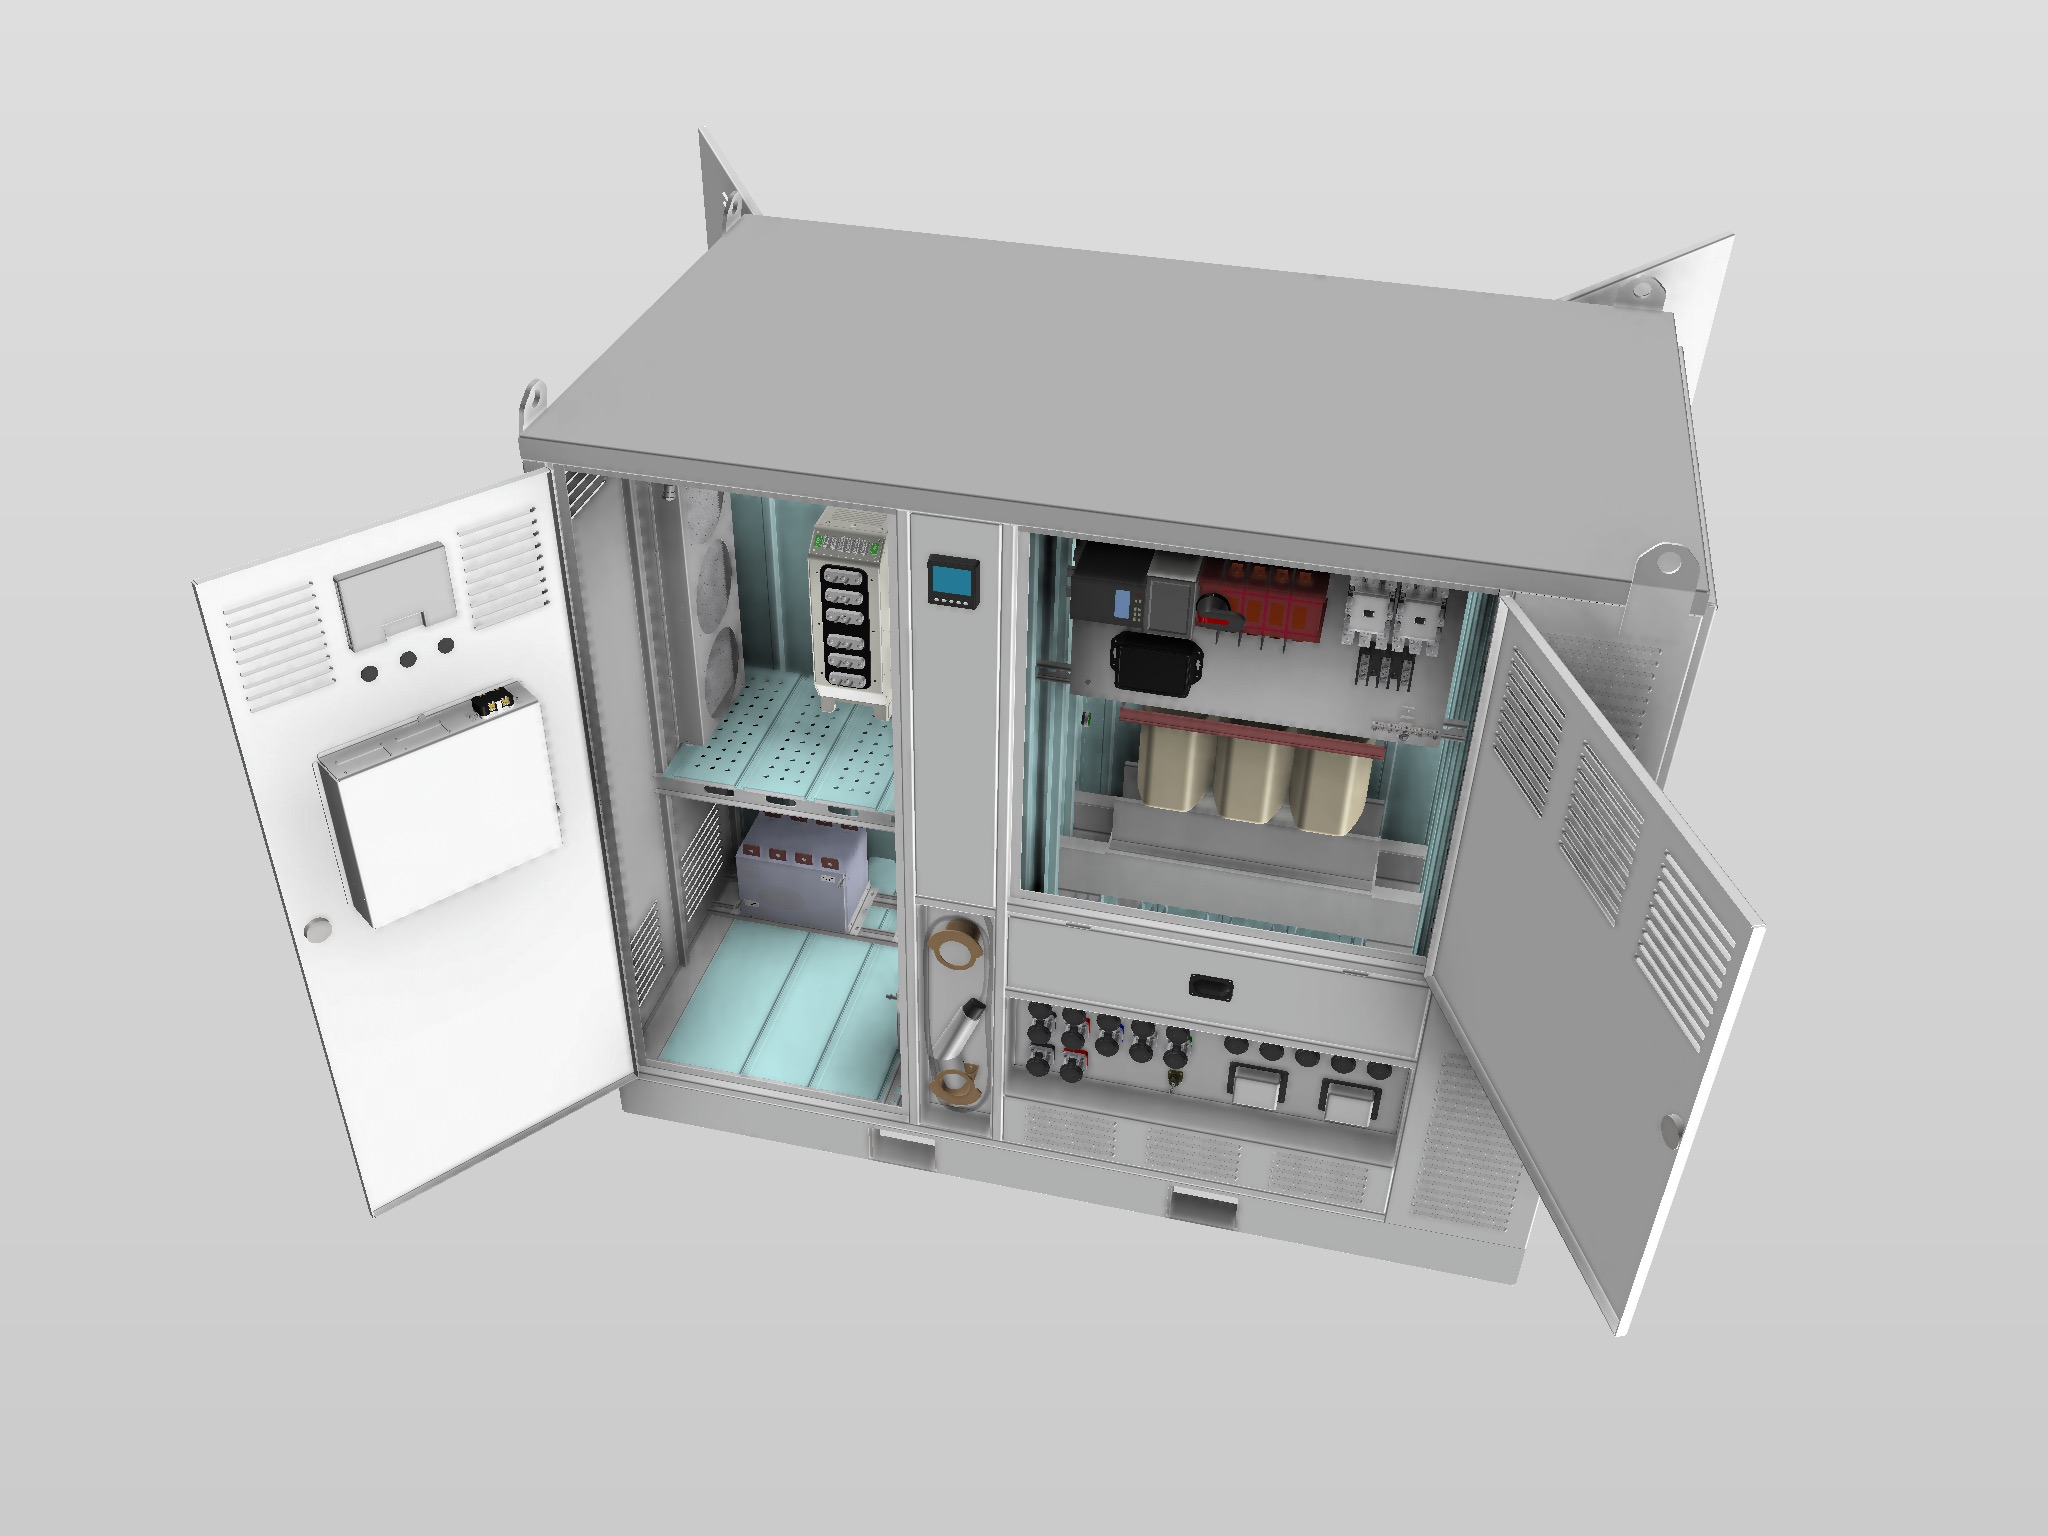 coritech_services_3dmodeling_3d_modeling_services_engineering.JPG